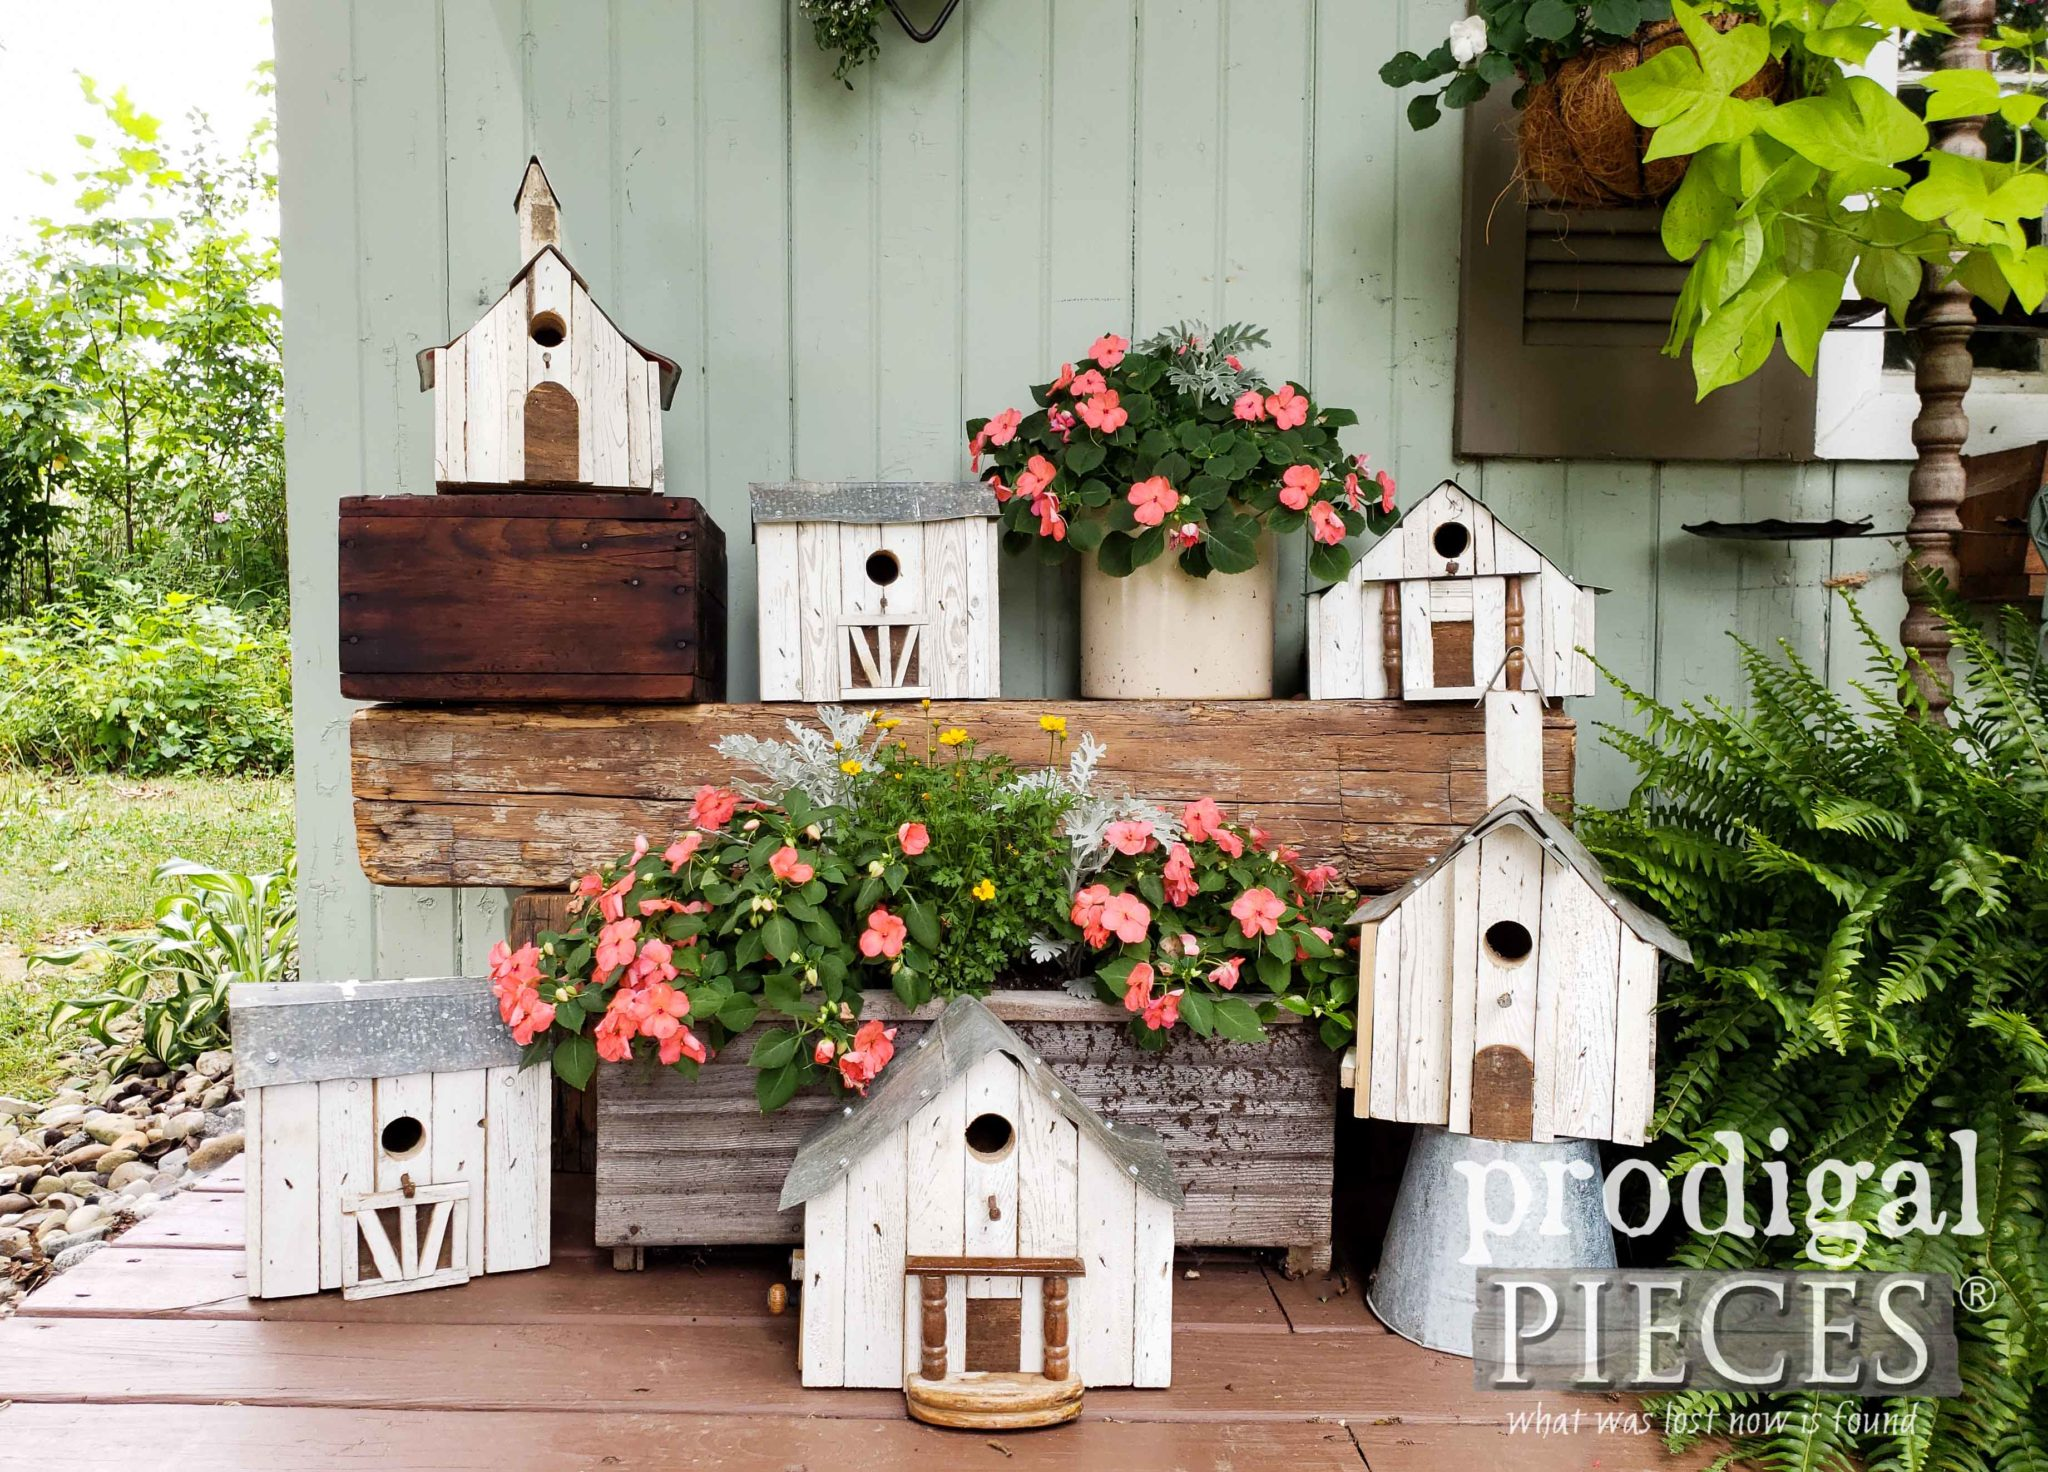 Collection of Handmade Farmhouse Birdhouses from Salvaged Junk by Larissa of Prodigal Pieces | prodigalpieces.com